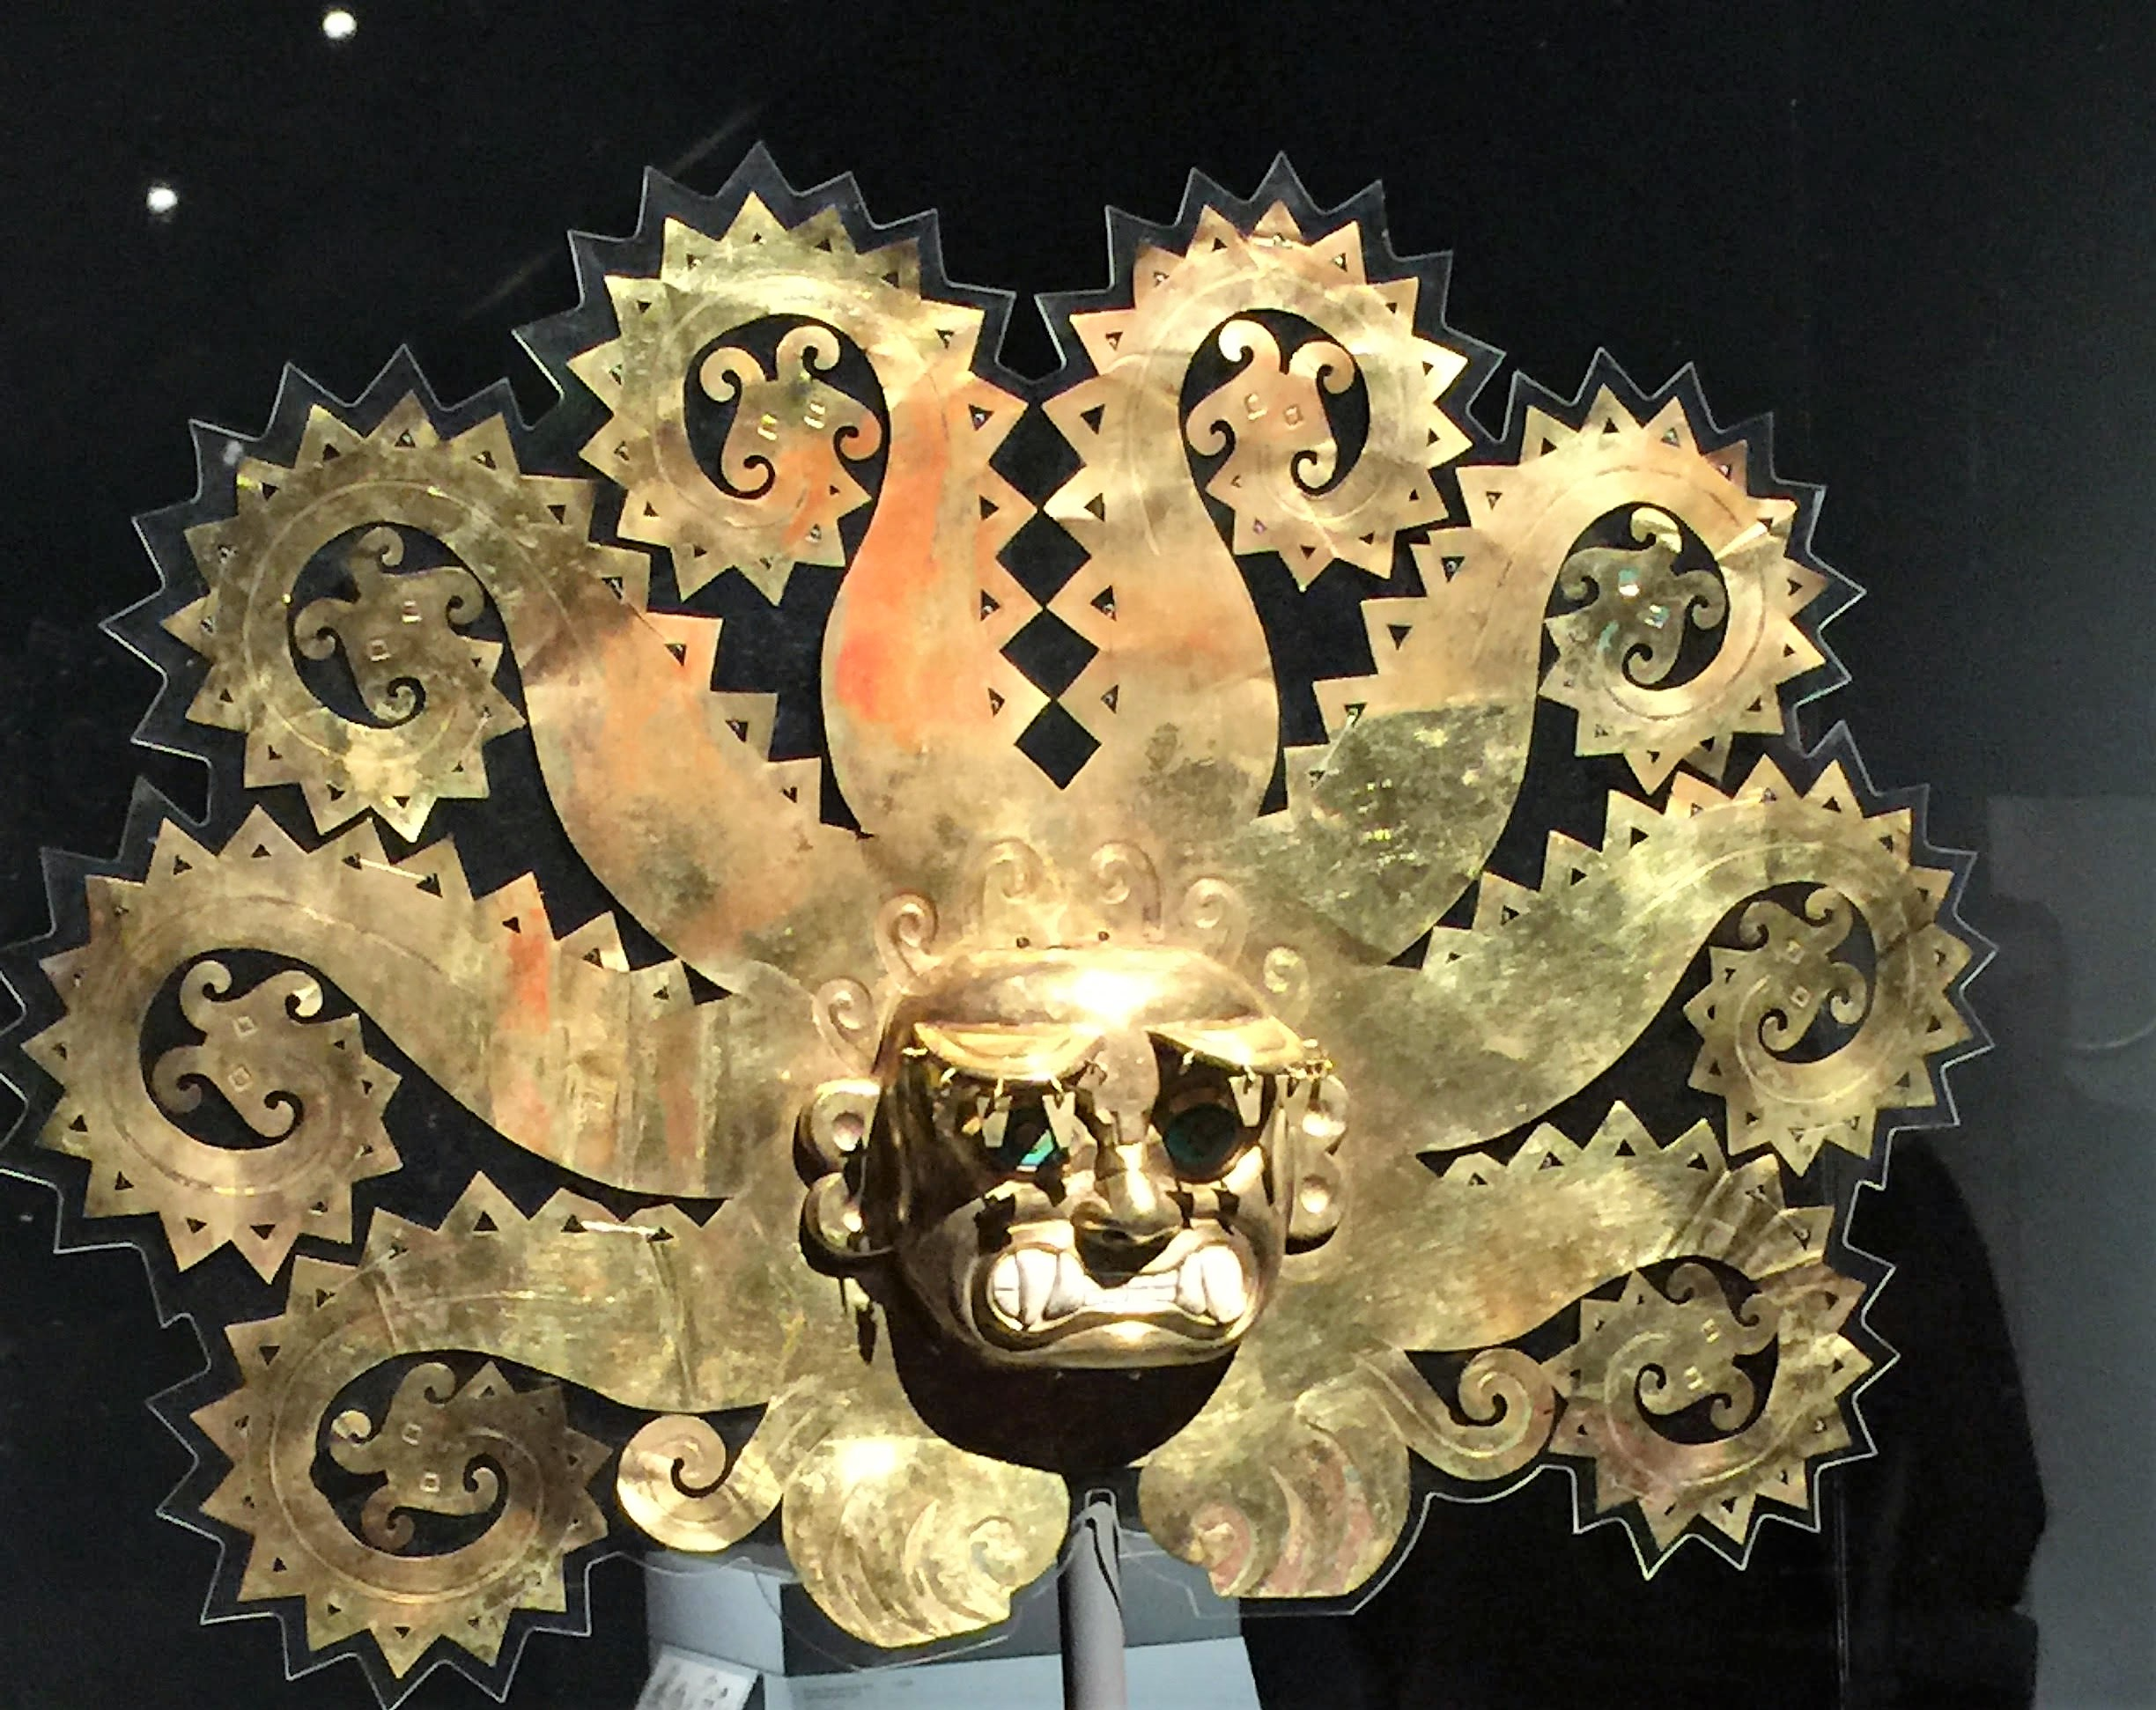 Octopus Frontlet - This object would have been affixed to a cylindrical headdress. Made of gold sheet, it was cut into the shape of a supernatural figure with serrated octopus tentacles that terminate in catfish heads.